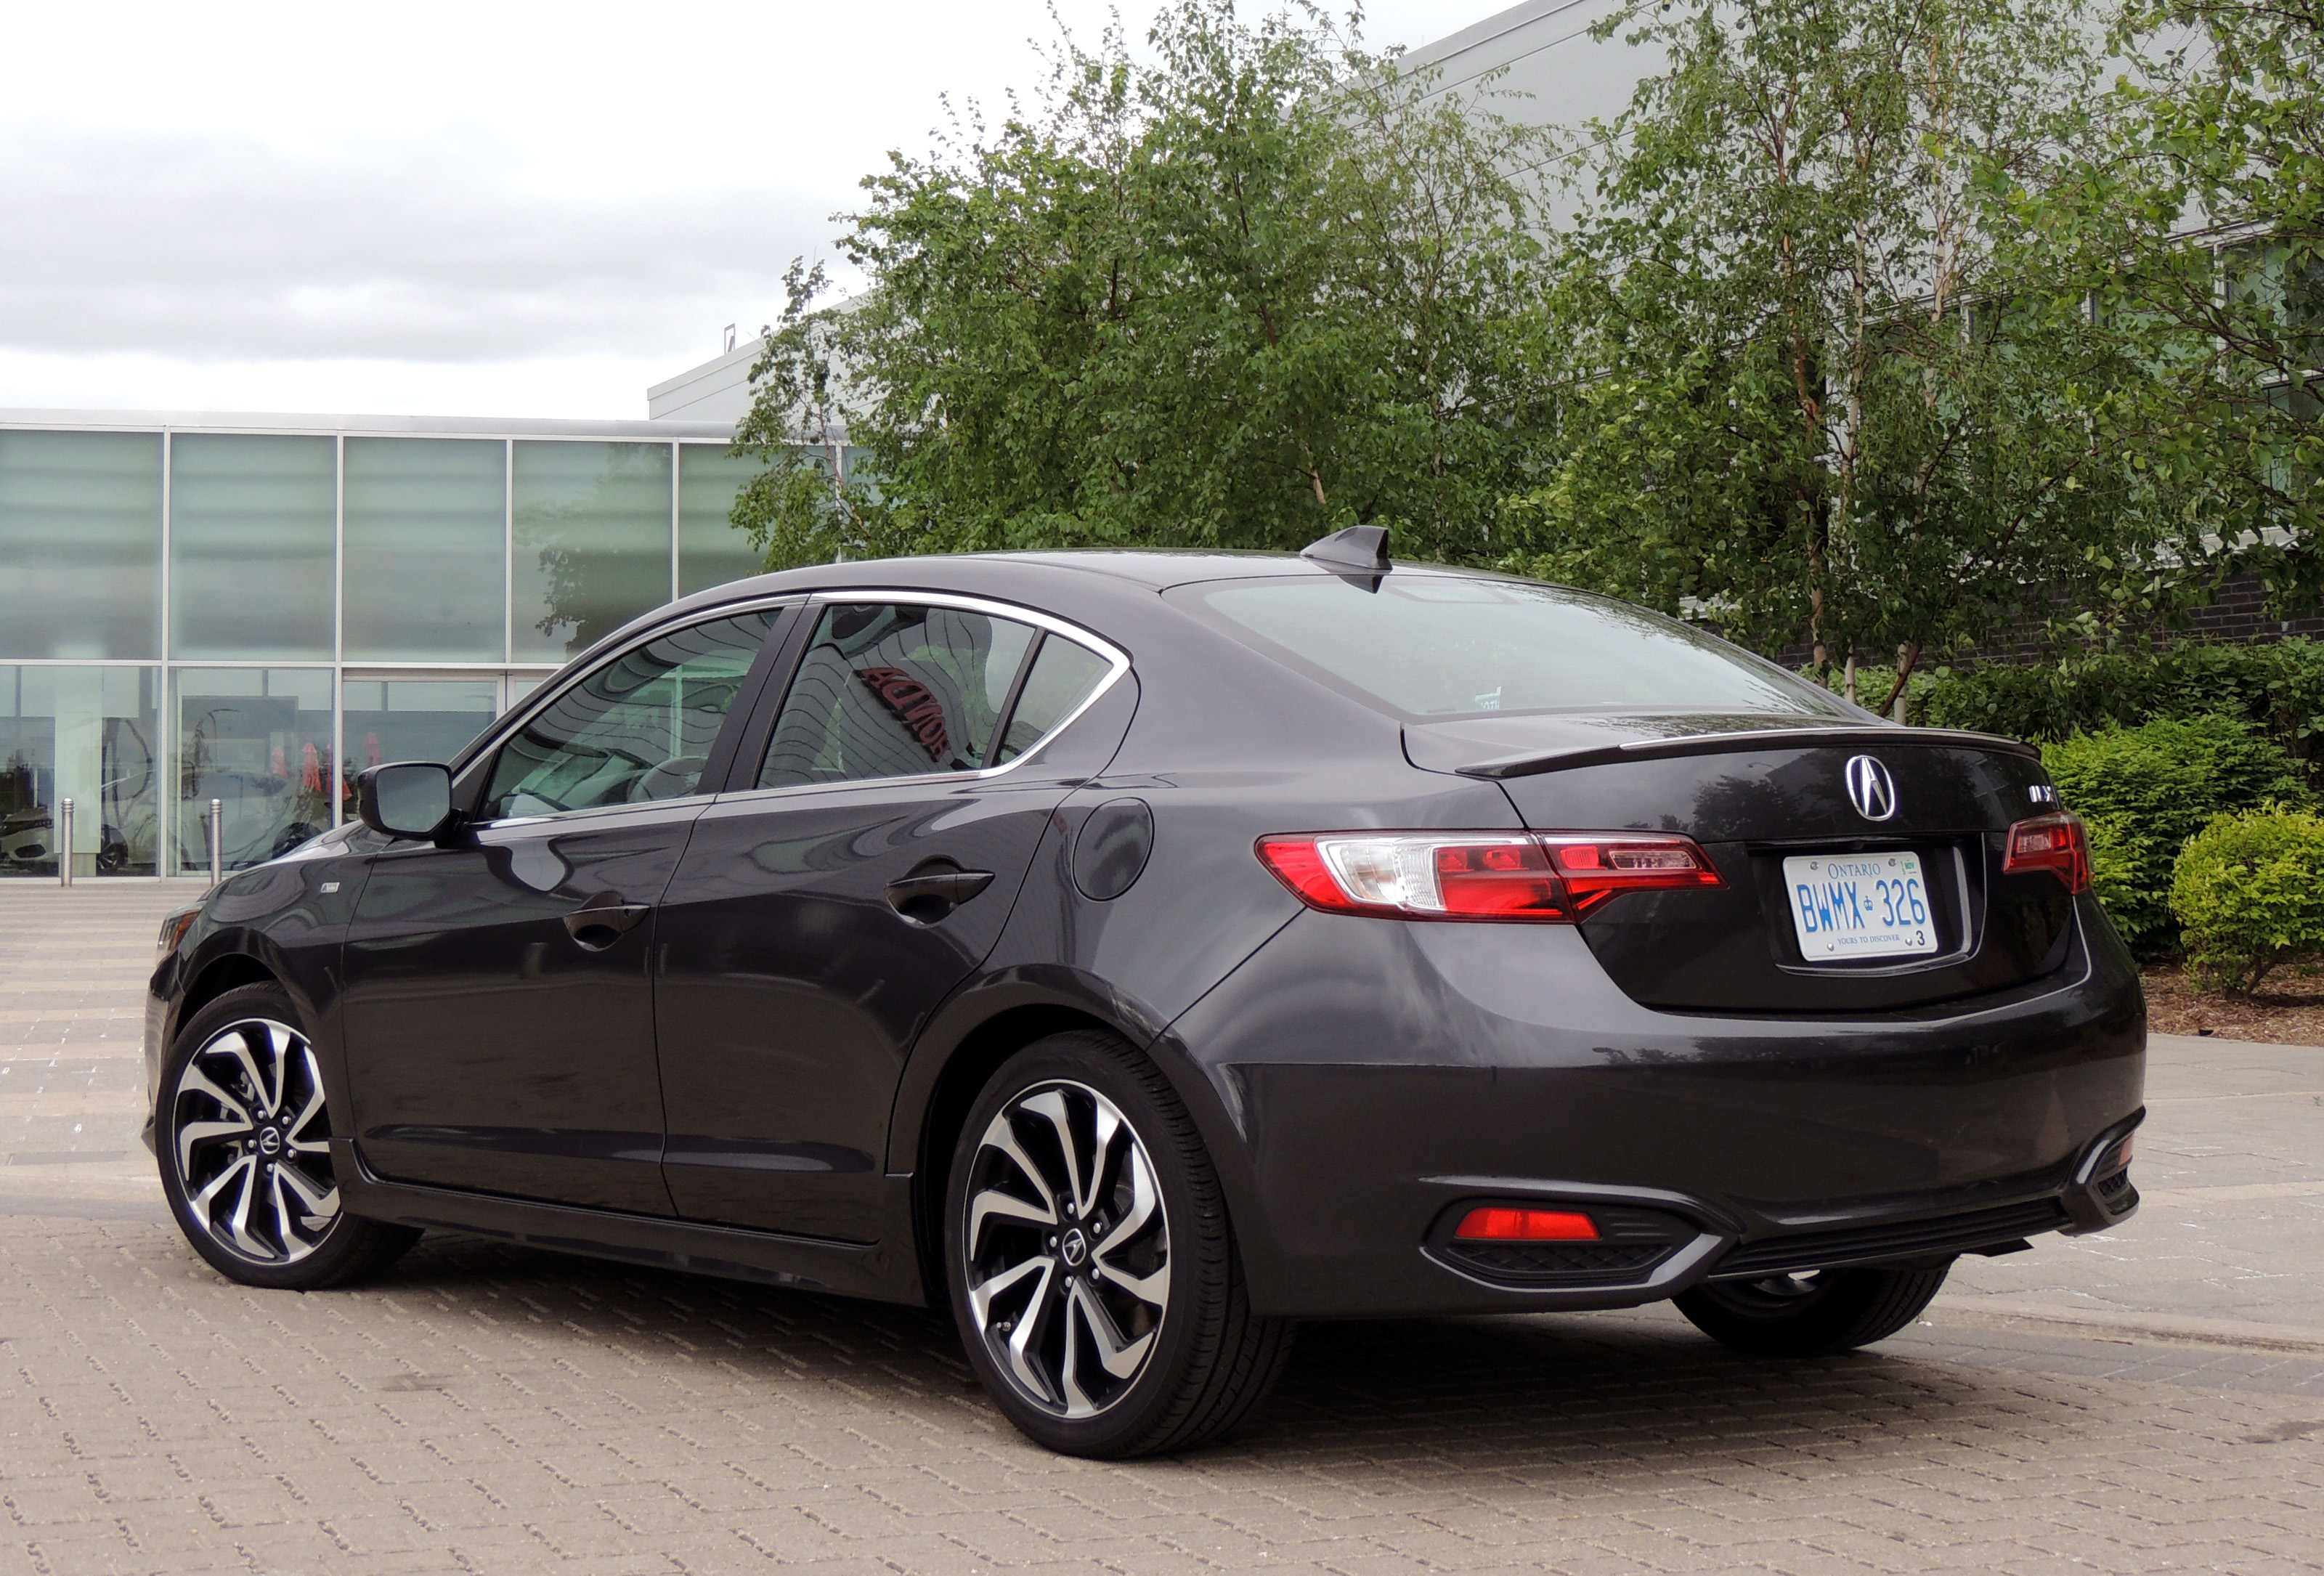 2016 Acura Ilx Review on acura s